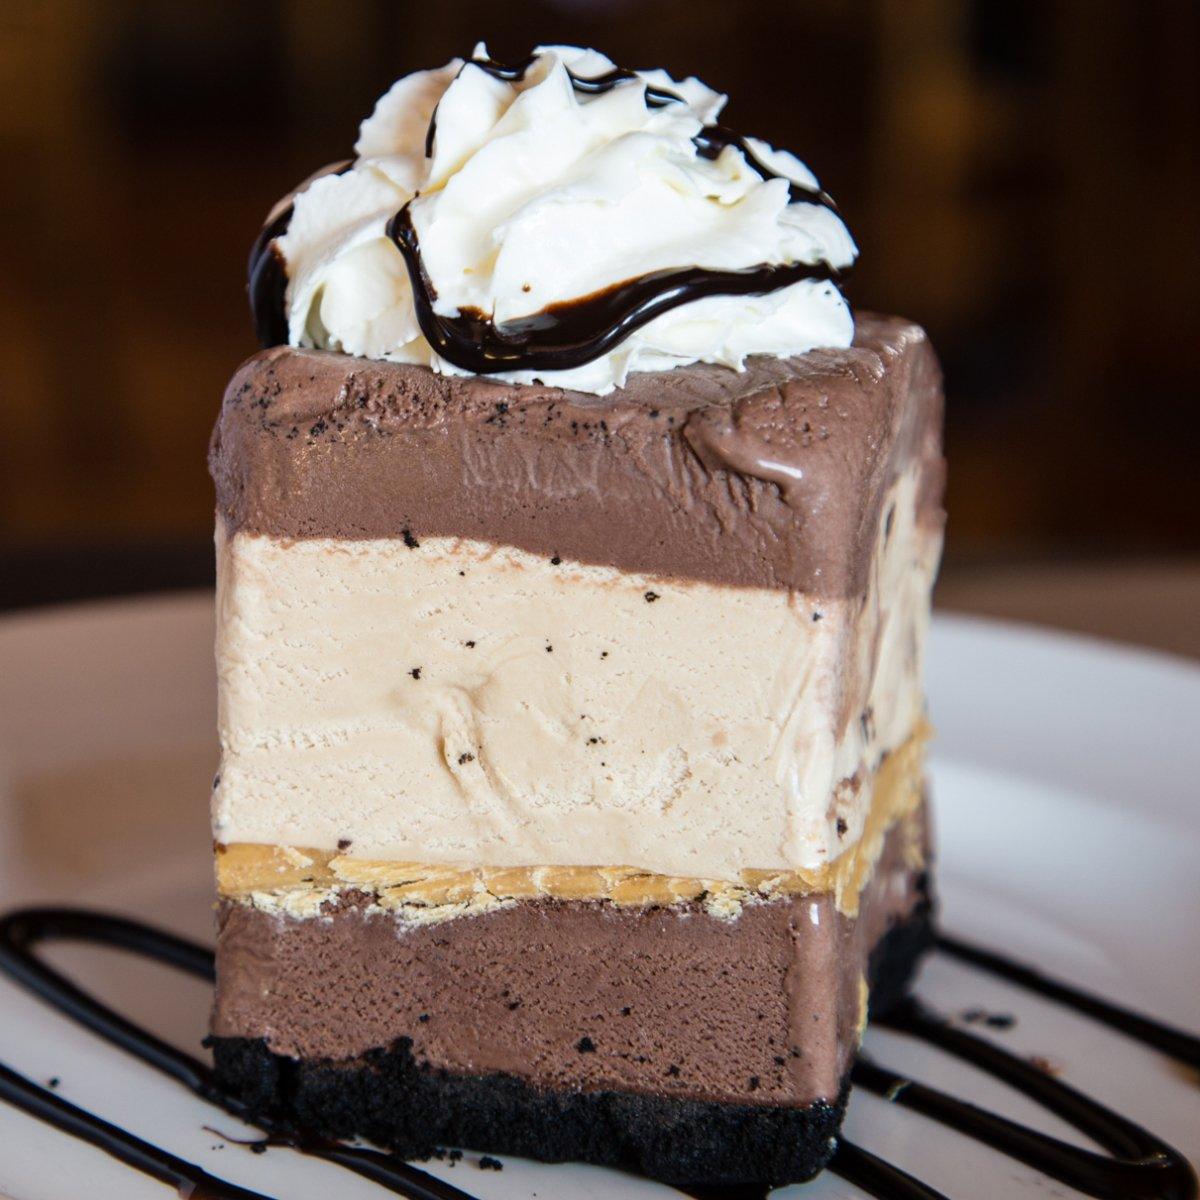 Happy International Chocolate Day! We're in  with this Montana's Mud Pie  What's your fave way to enjoy chocolate? Tell us in the comments for a chance to win 500 points to treat yourself to $5 off your dessert at Montana's! #AreYouIn  Contest ends Sep 18 at 11:59pm EST.<br>http://pic.twitter.com/YRie5skvTW